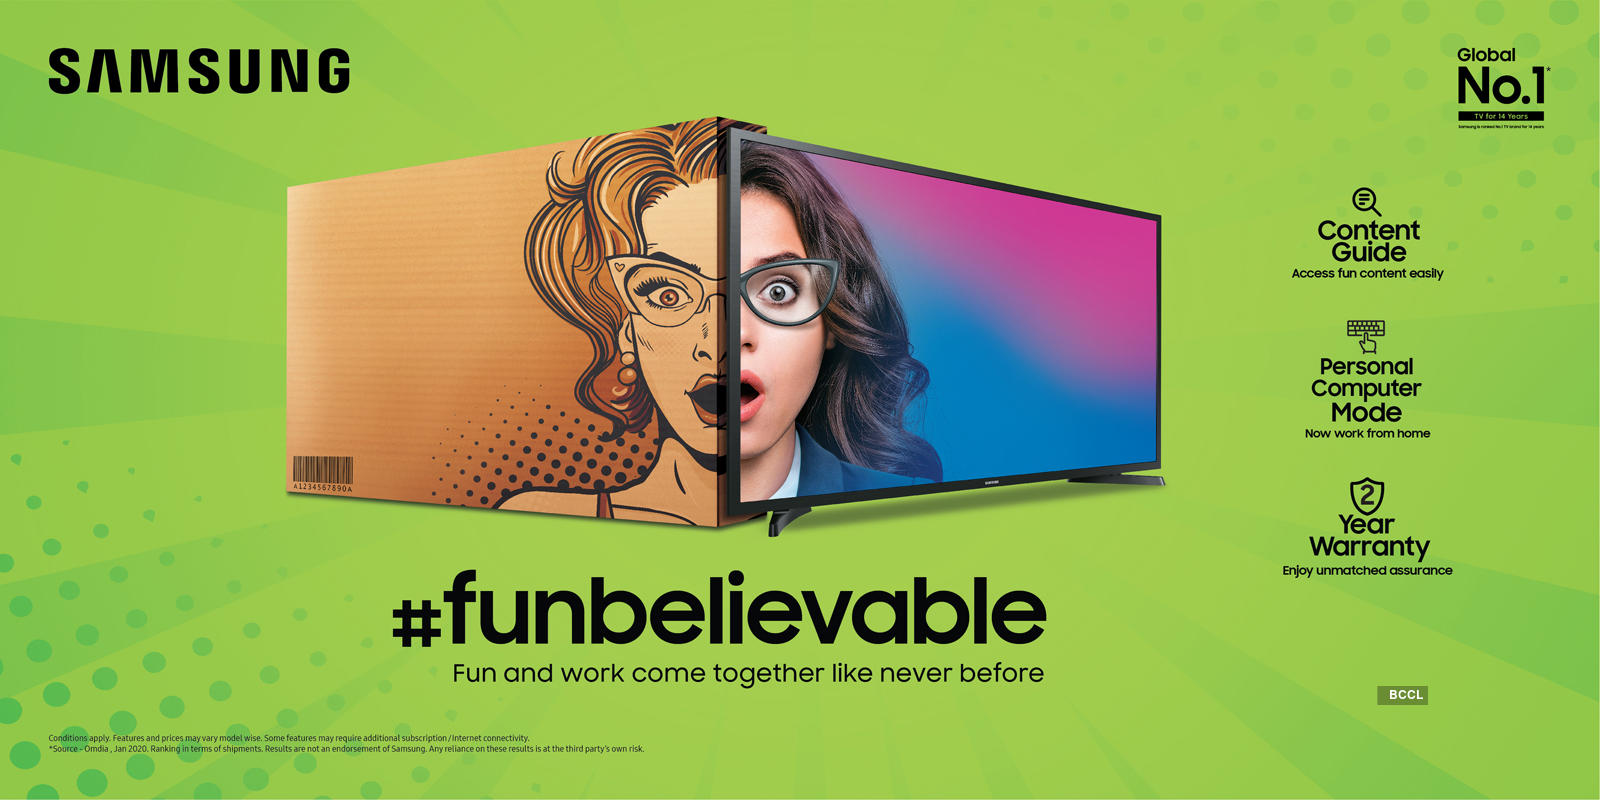 Samsung launches new TV series